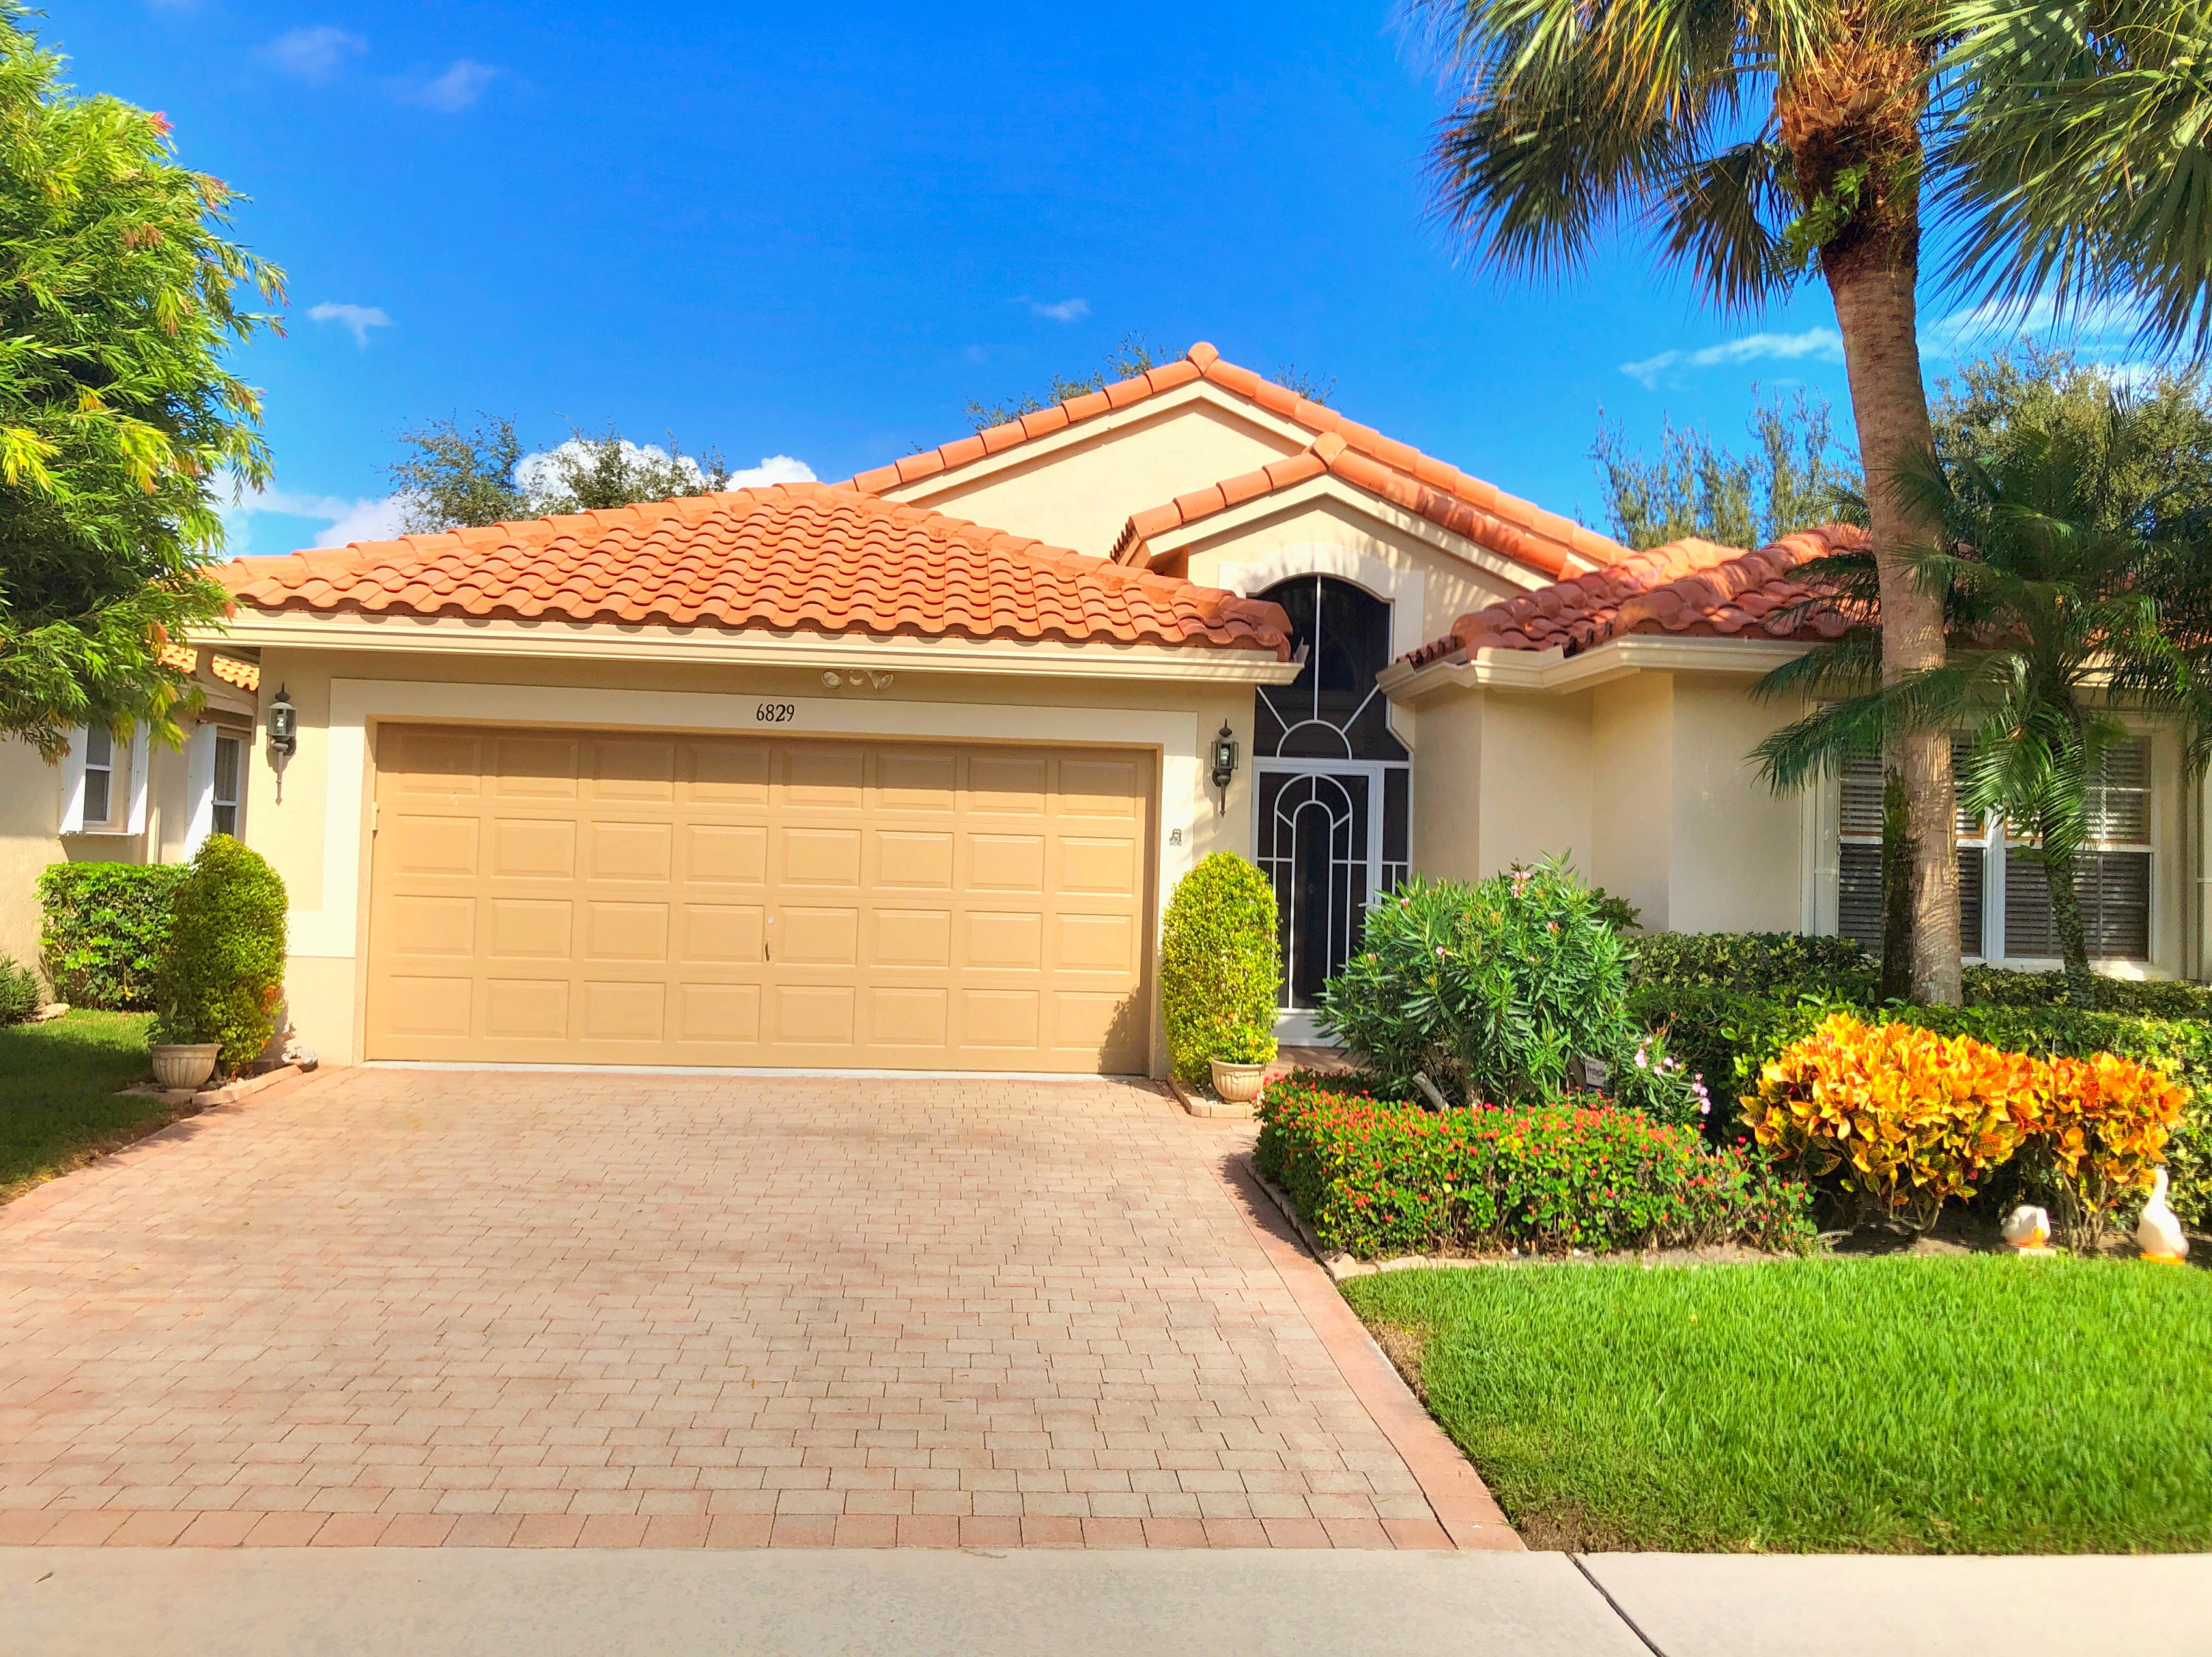 6829 Castlemaine Avenue Boynton Beach 33437 - photo